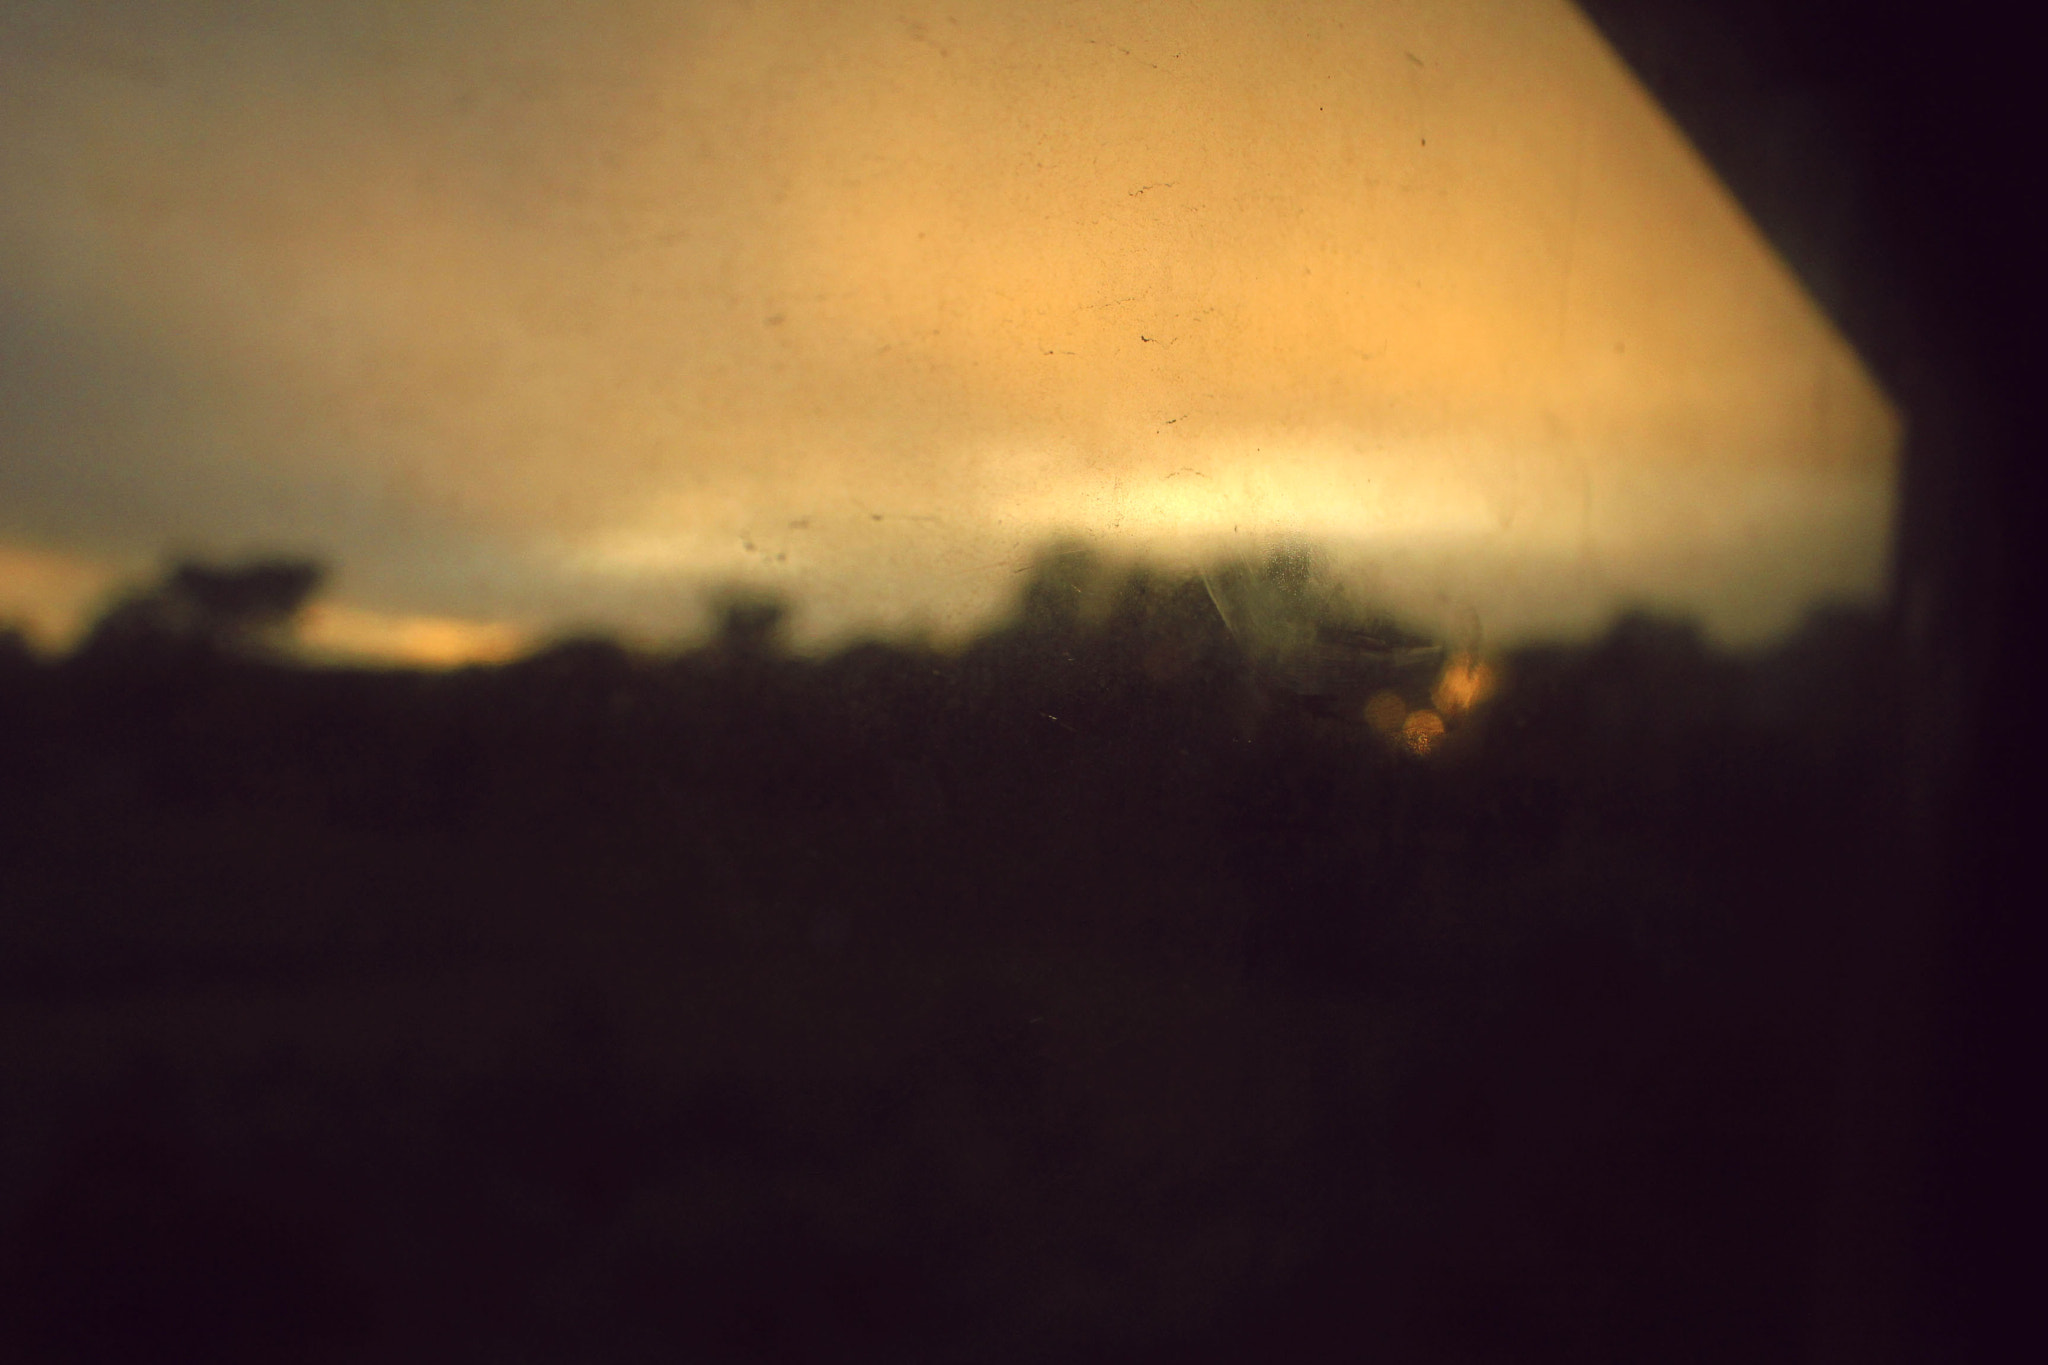 Photograph Sunset view from the train by Hoàng Đại on 500px